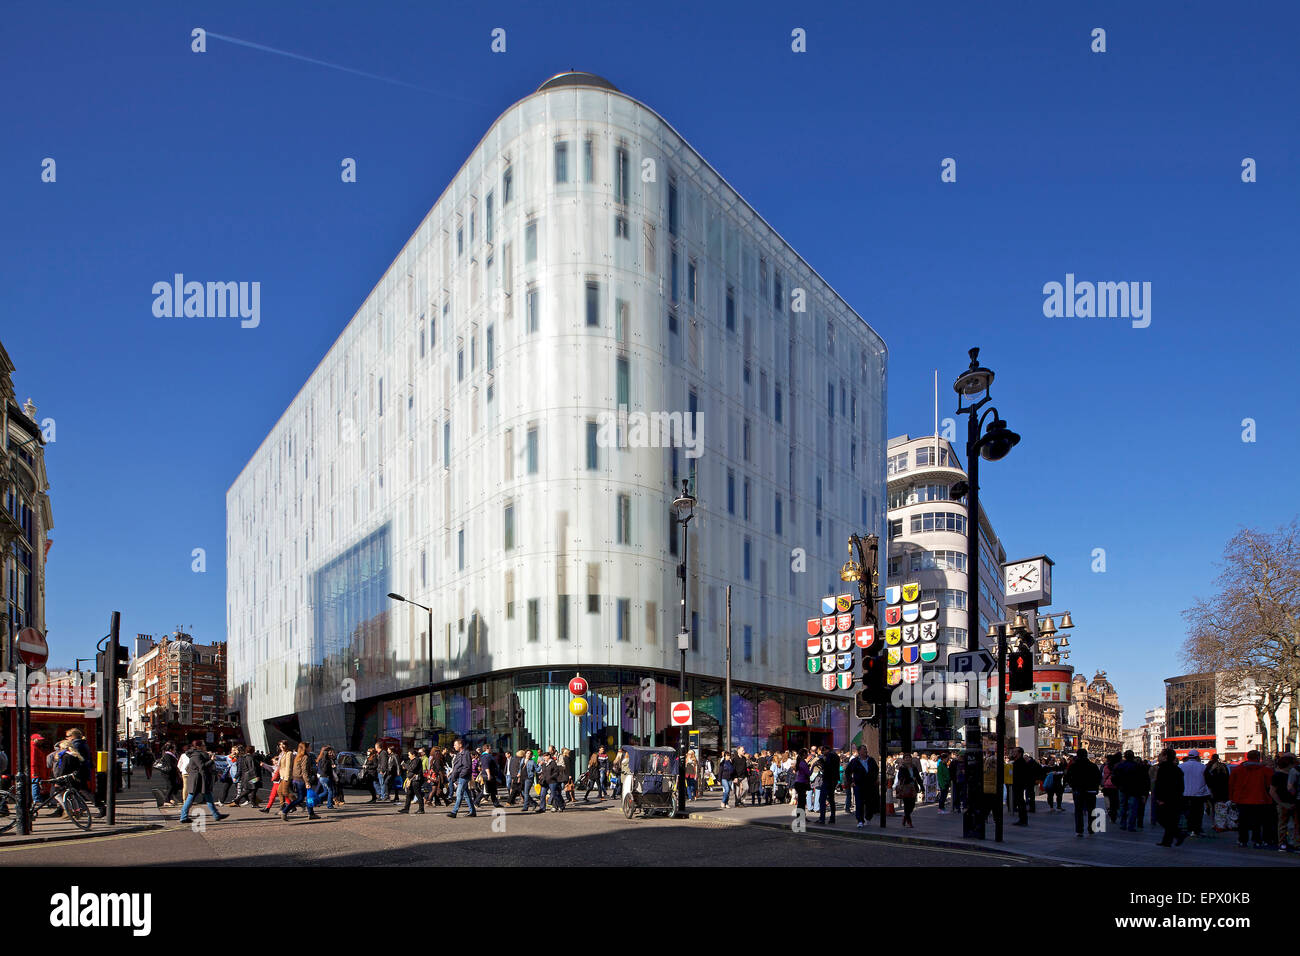 Massen Pass W Hotel Leicester Square London England Uk Stockfoto